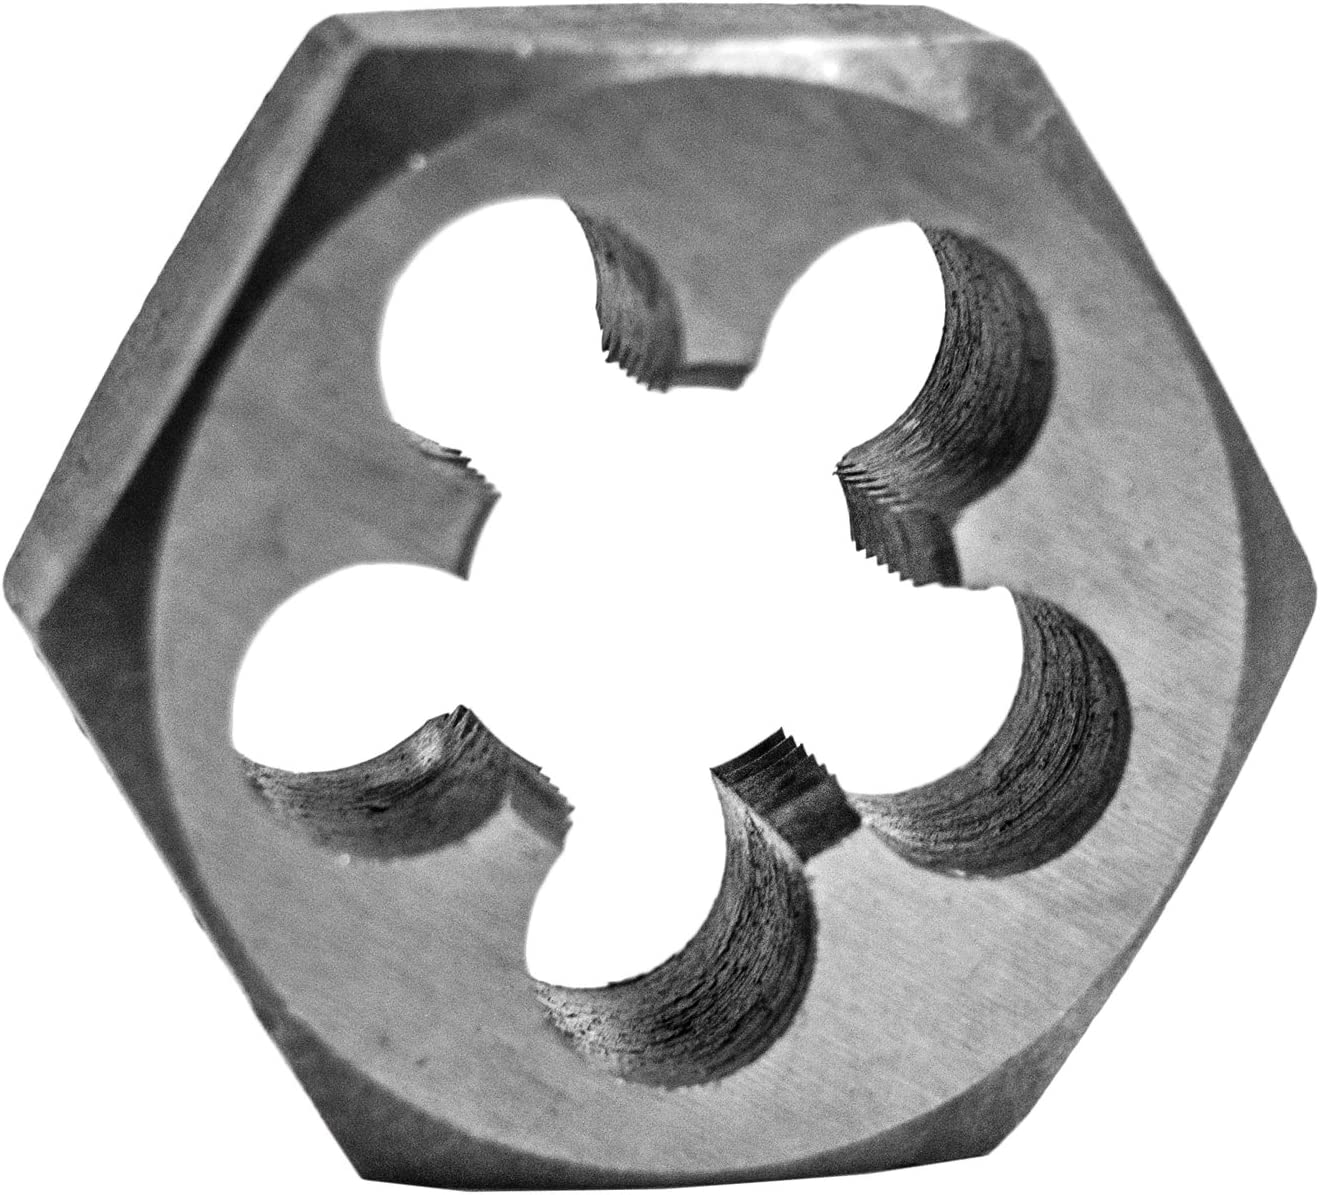 Latest Great interest item Century Drill Tool 96208 High Fractional Steel Hexagon Carbon